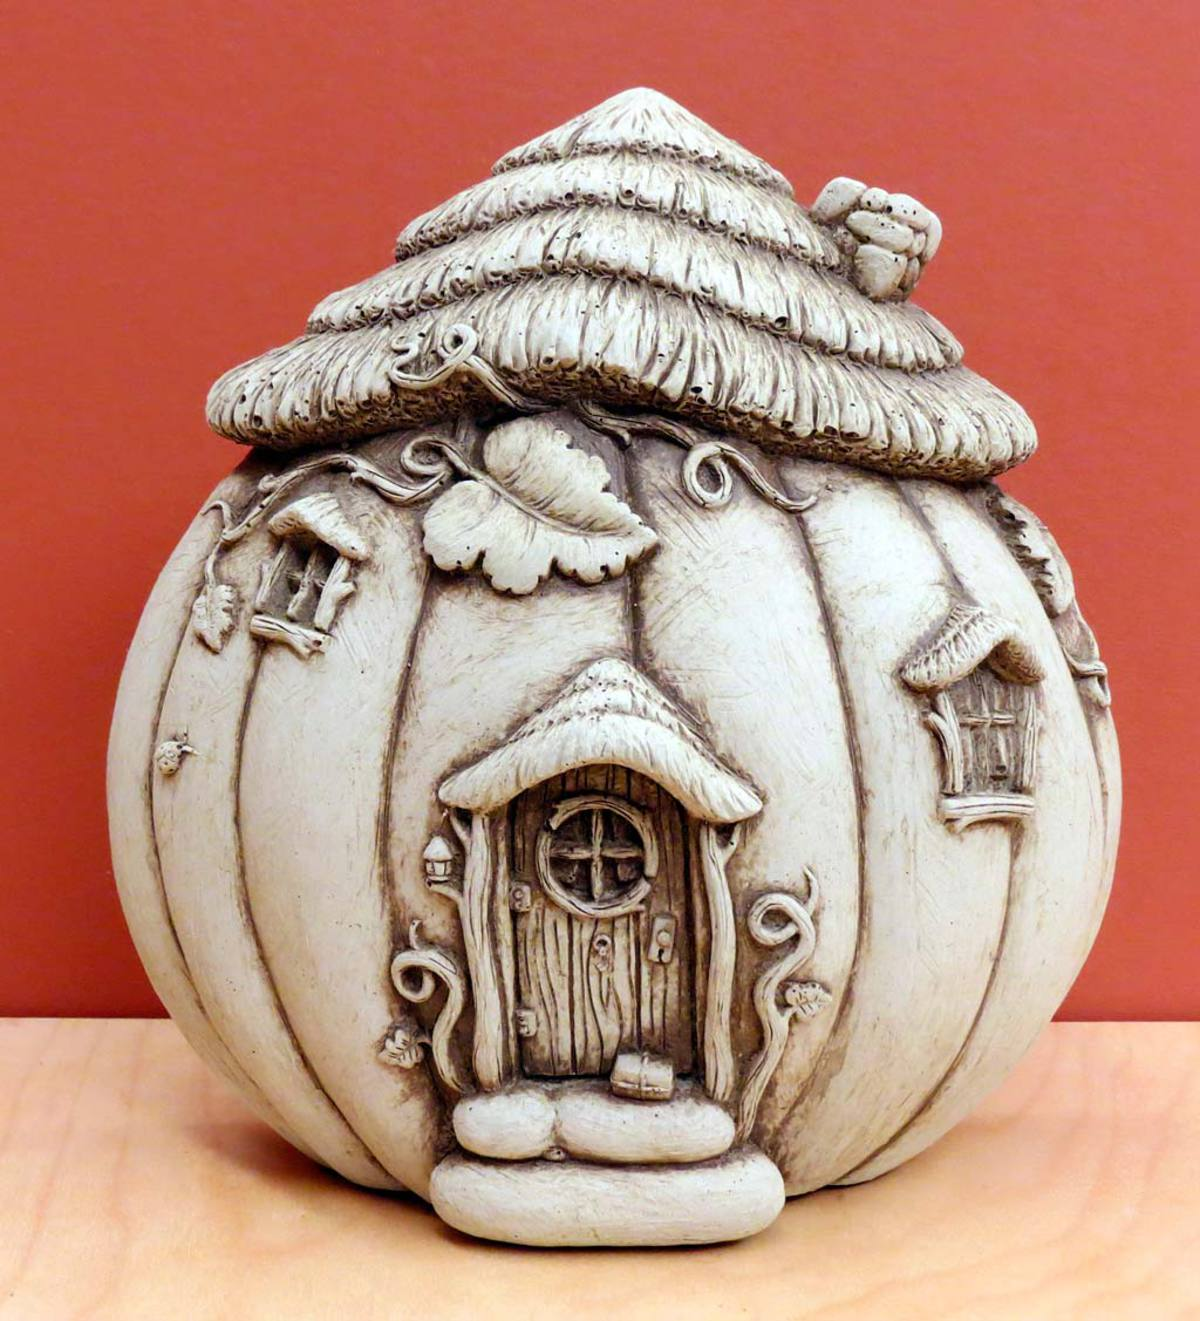 Cast Stone Fairy Home in a Pumpkin